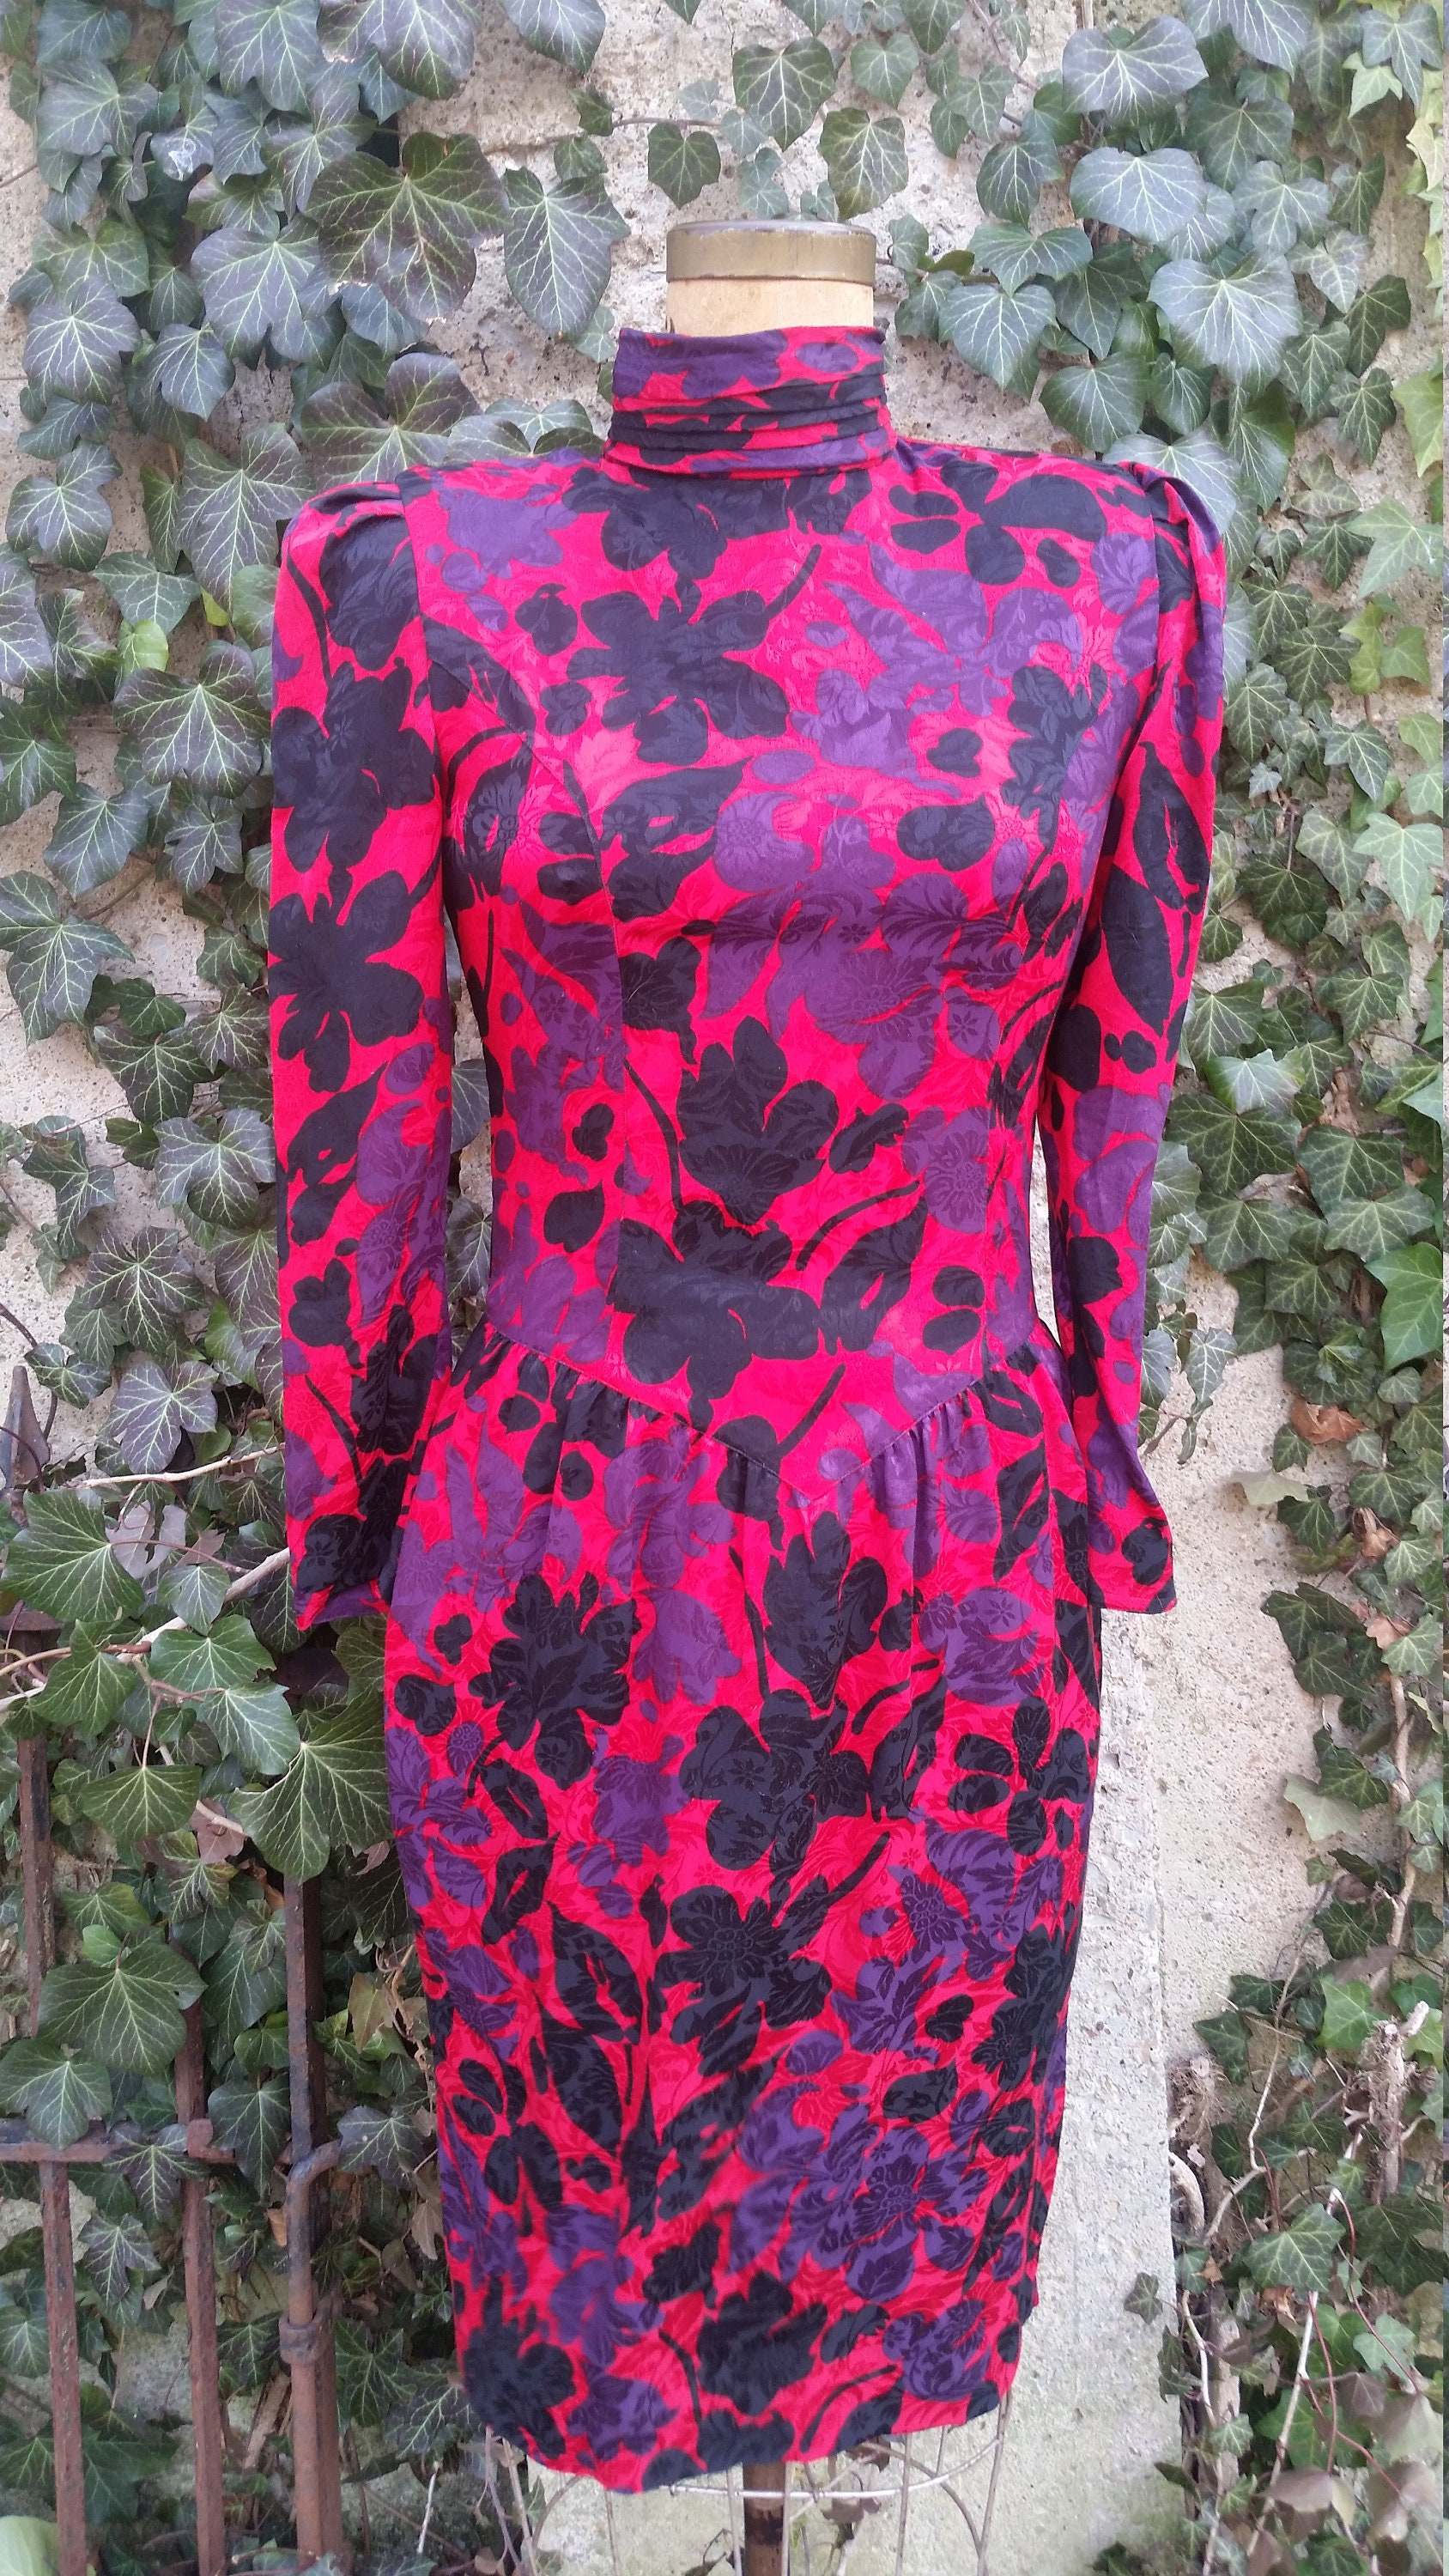 80s Dresses   Casual to Party Dresses Vintage Dress 1980S Silk Foral Cocktail Dramatic Turtleneck Red Black Purple 80S Glam Party Frock Size 6 Made By St. Gillian Petites $6.00 AT vintagedancer.com